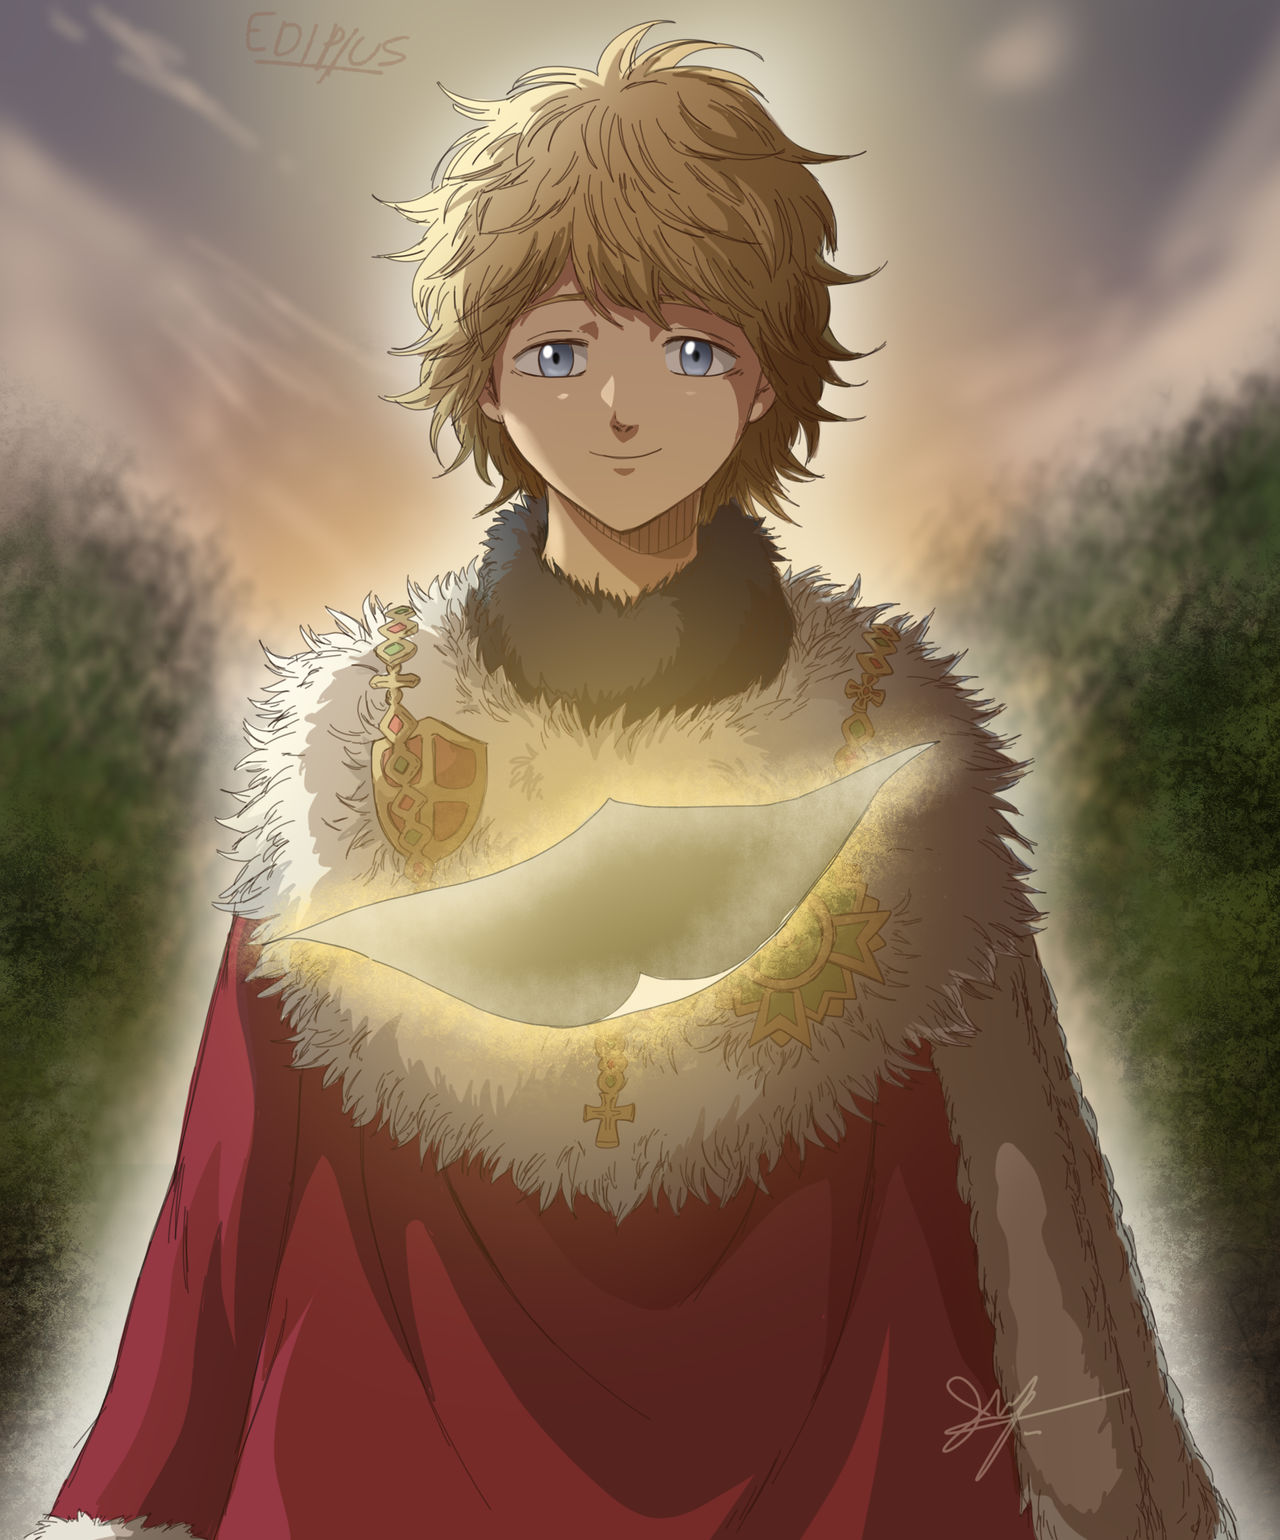 Julius Joven Black Clover Ep 214 By Ediptus On Deviantart